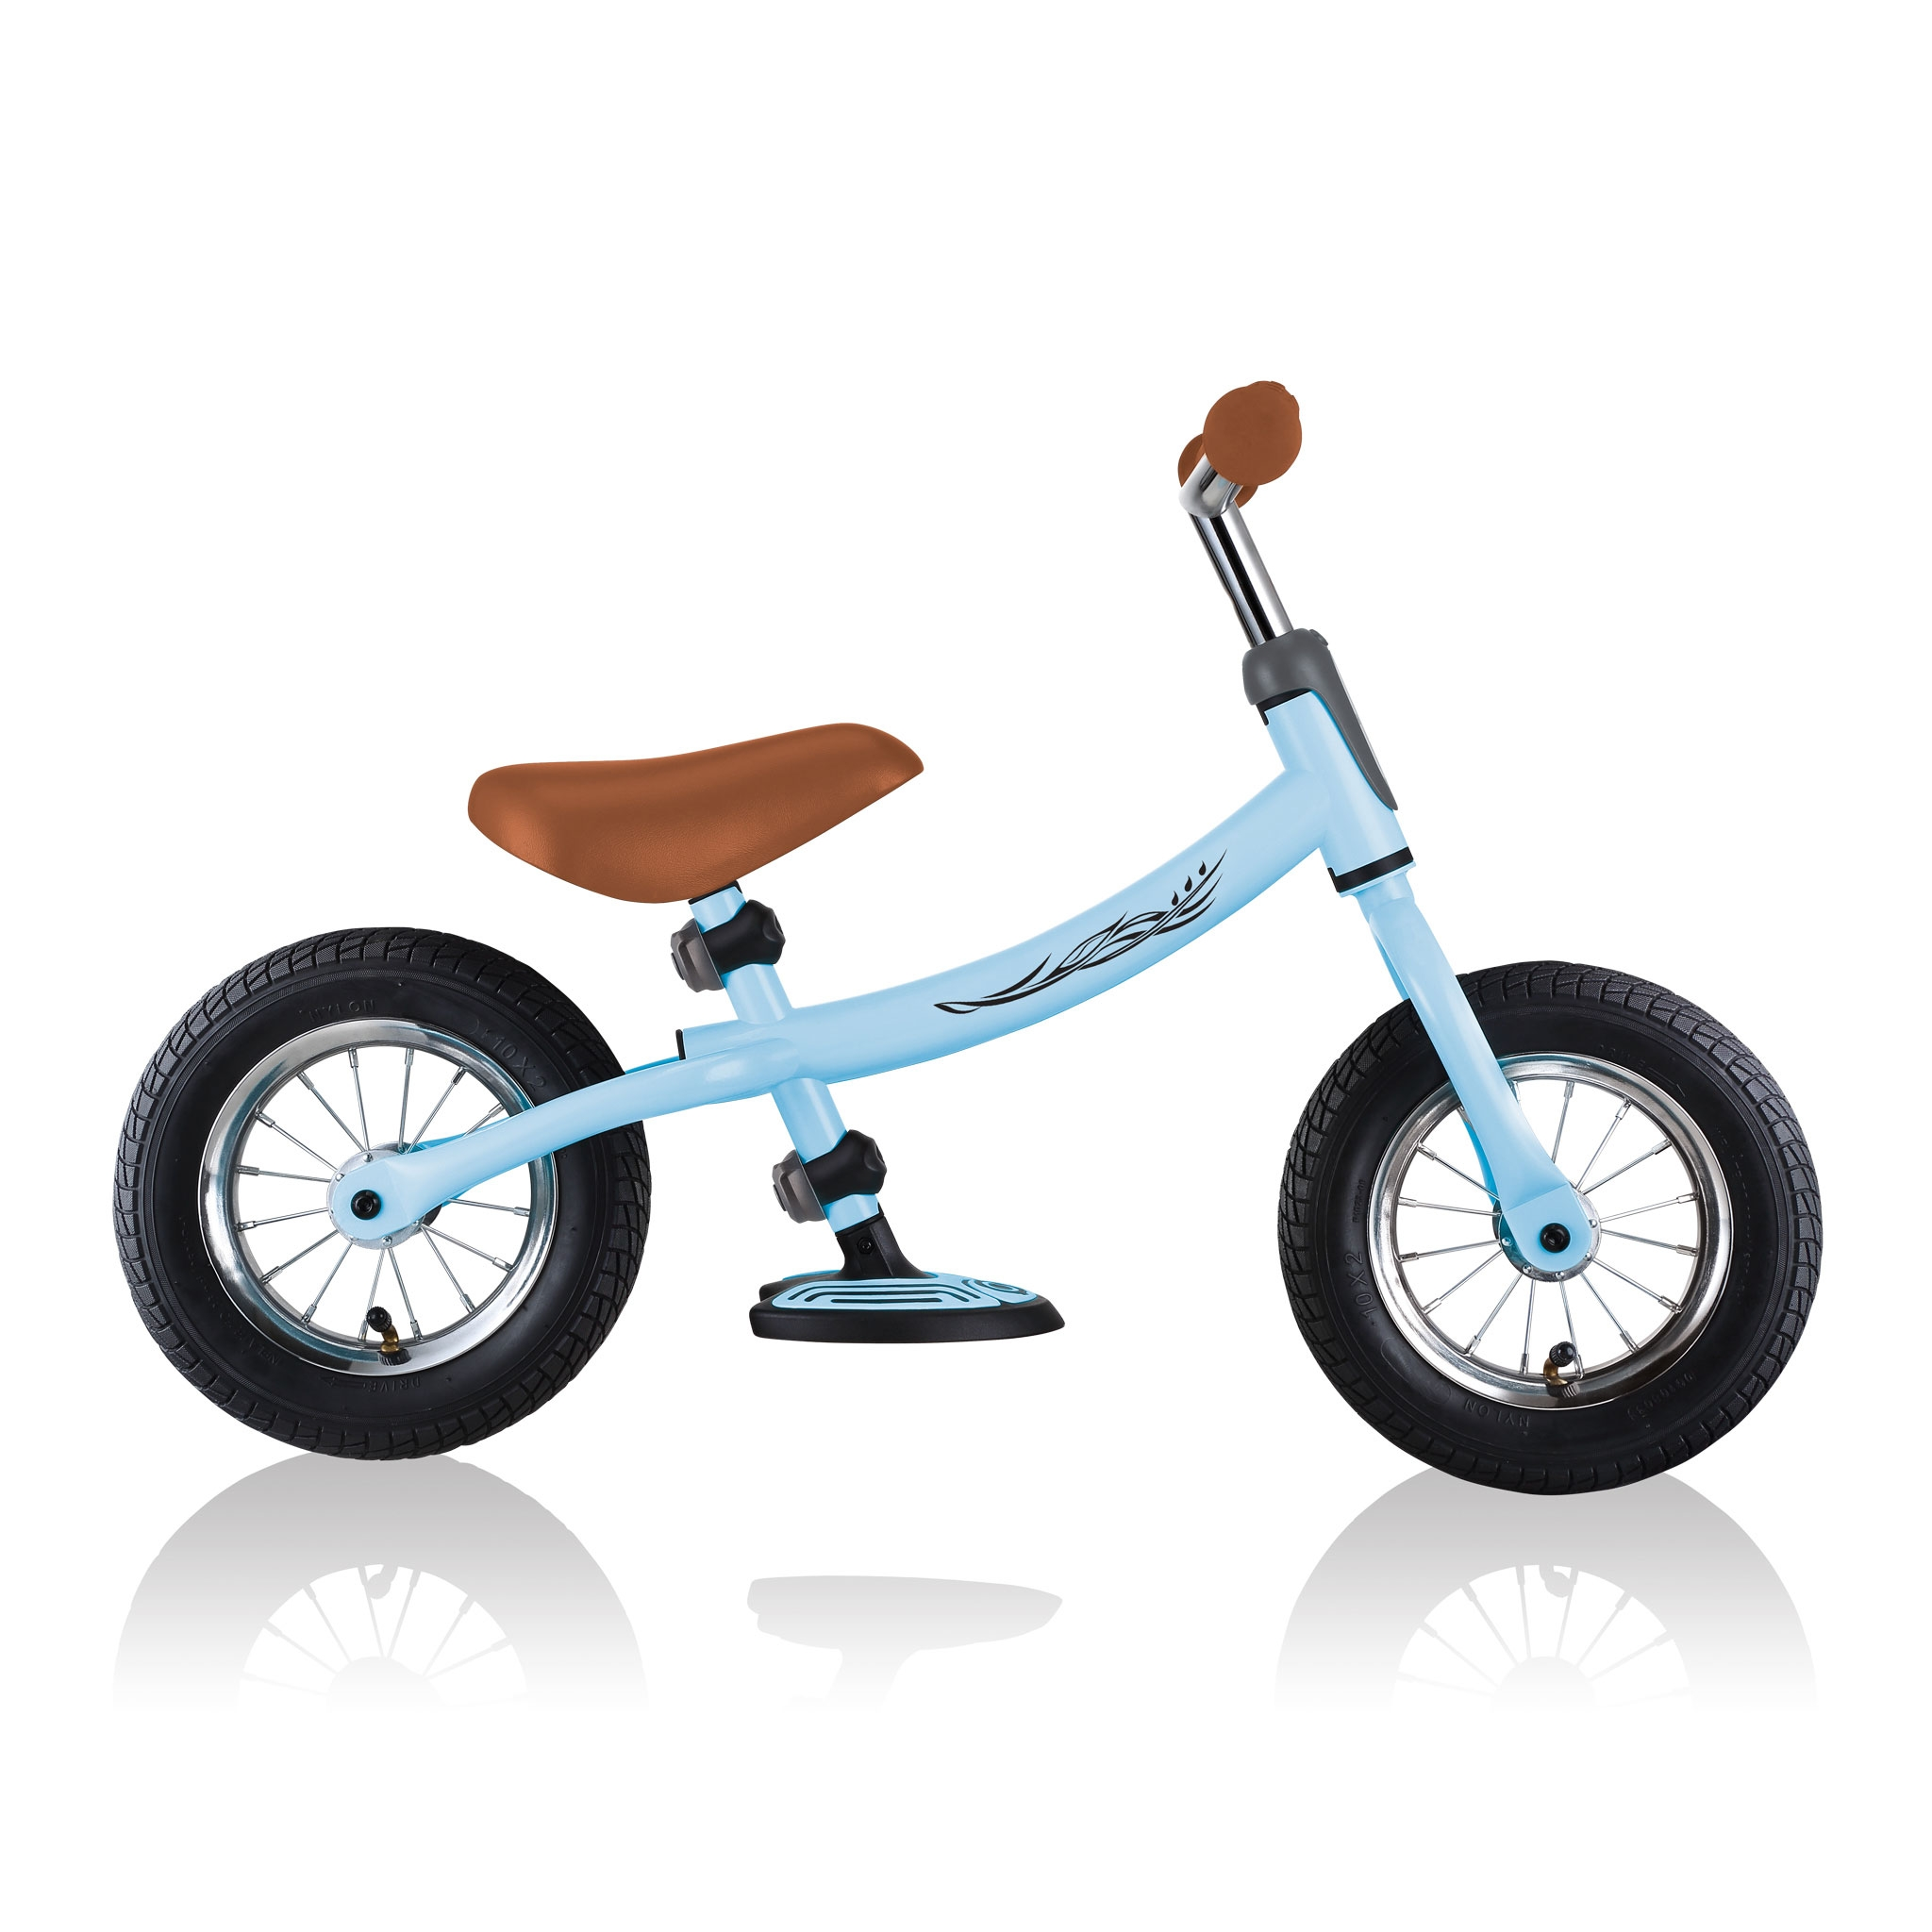 GO-BIKE-AIR-toddler-balance-bike-transform-bike-frame-from-low-frame-position-into-high-frame-position_pastel-blue 4